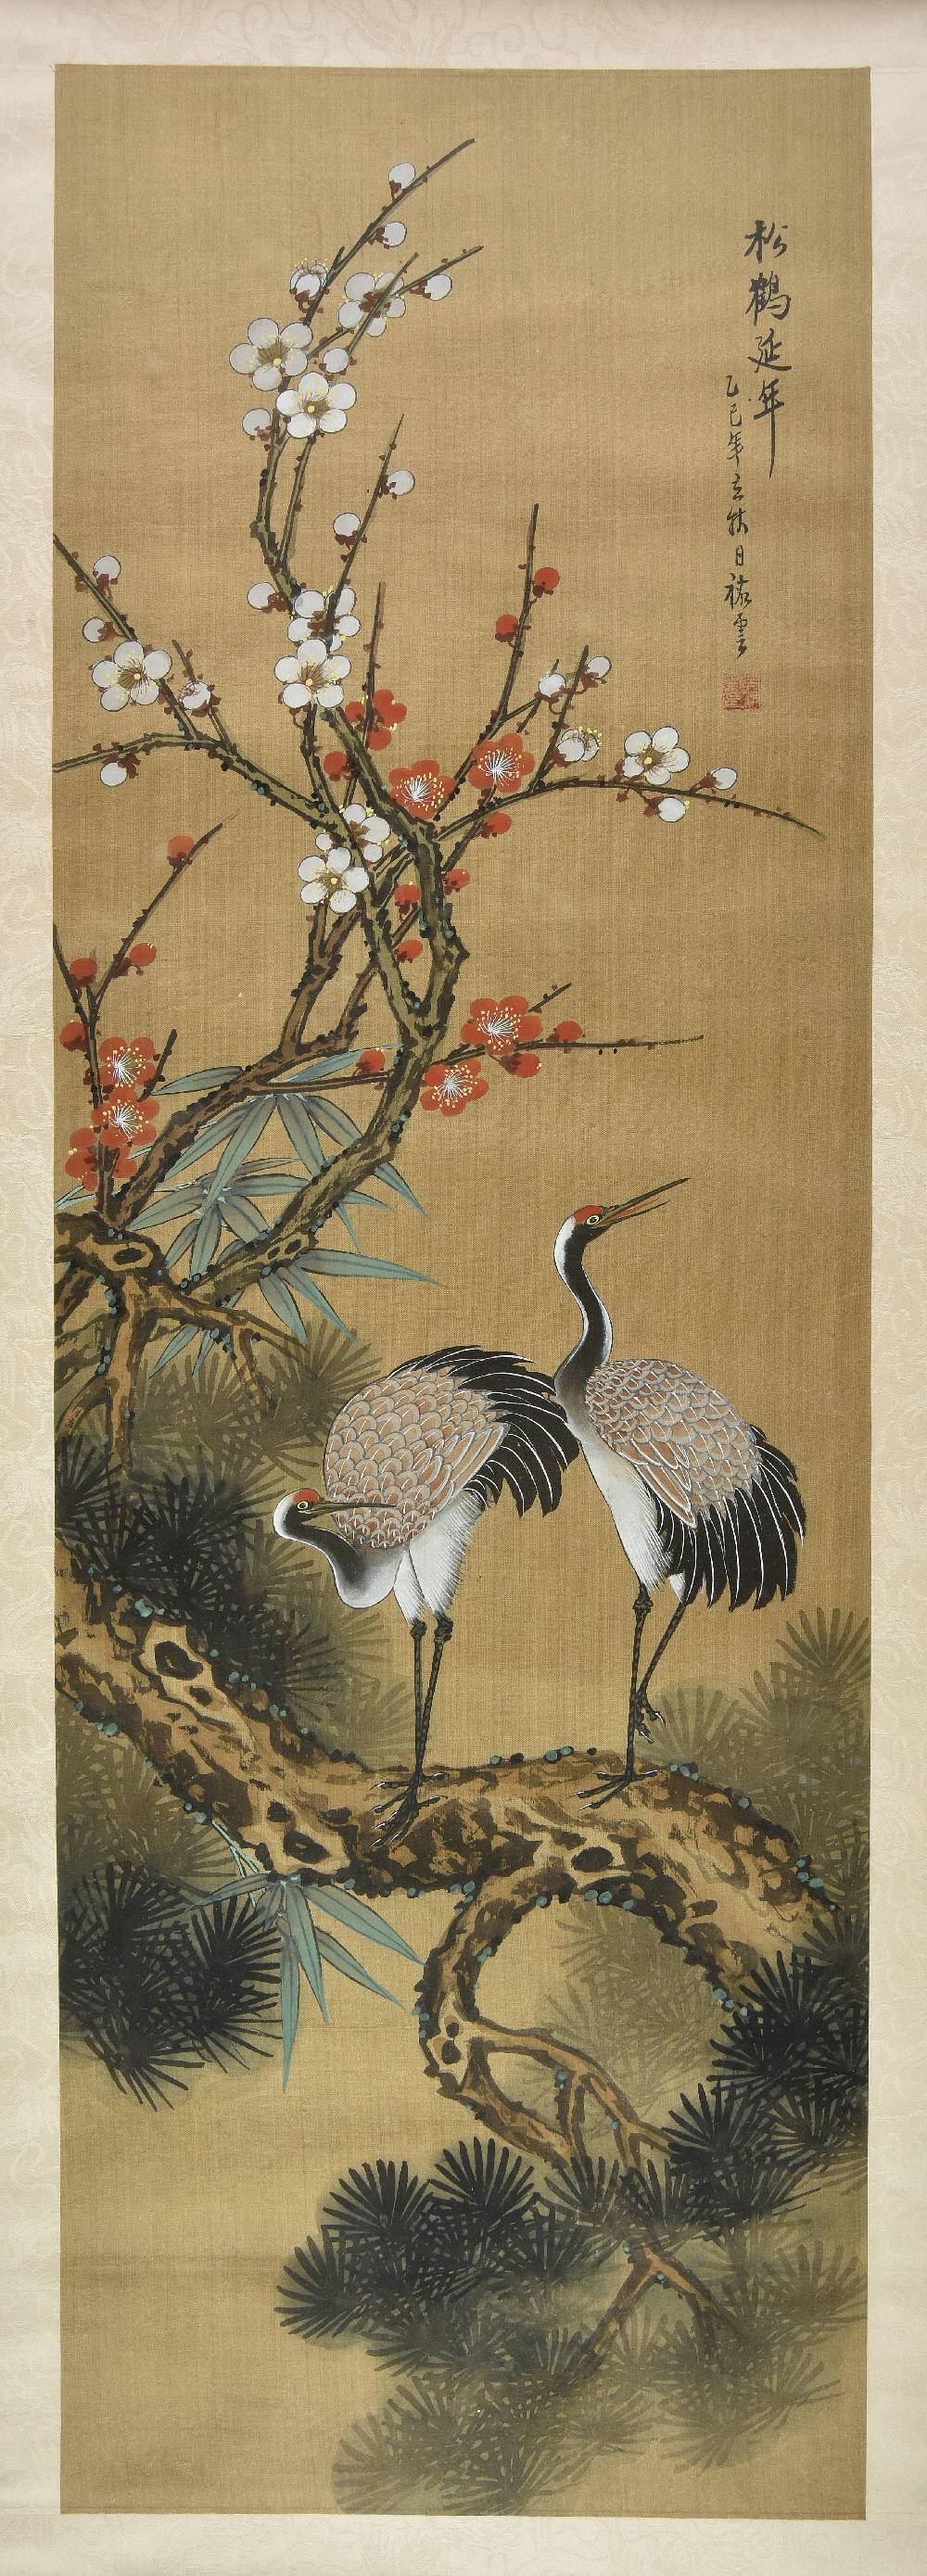 Lot 50 - *Yu-Yun (1864-1938). Pine Trees and Cranes, & Two Birds and Flowers, a pair of watercolour and